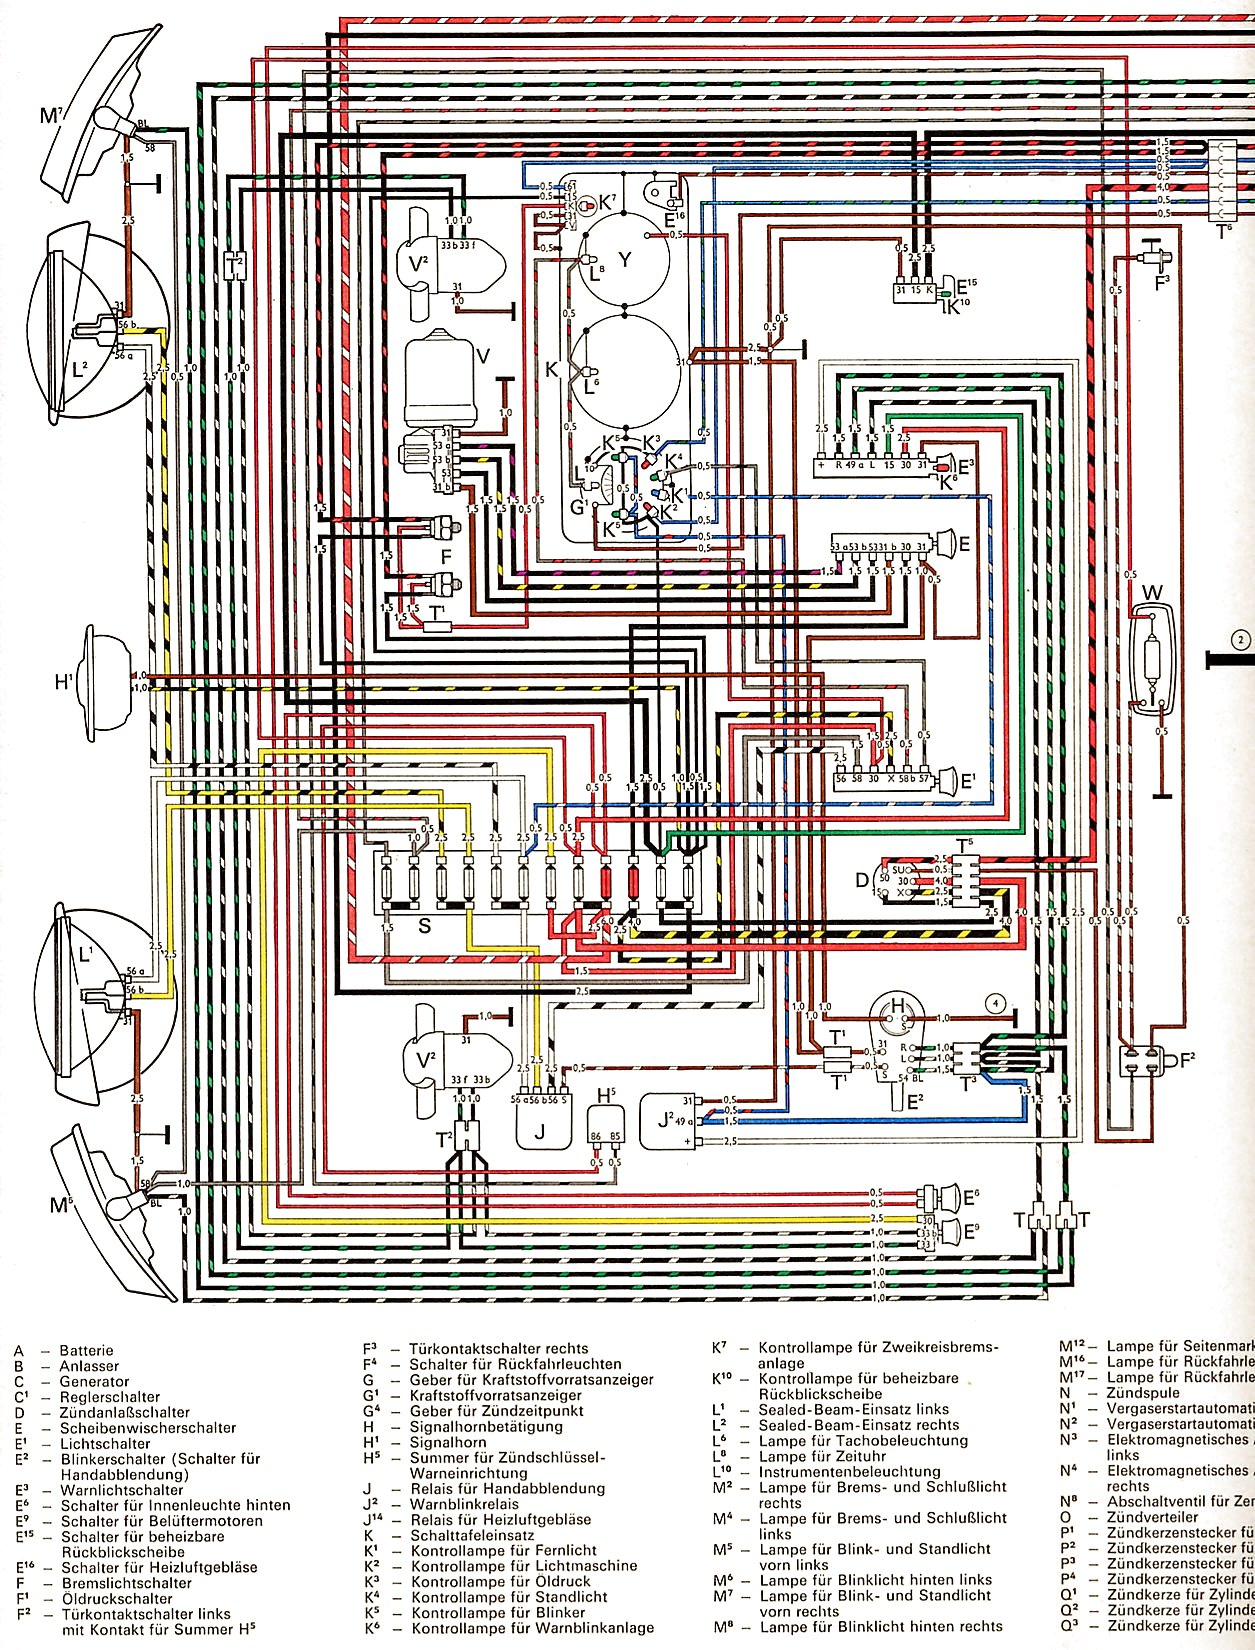 vw t4 wiring diagram wiring diagrams and schematics diagram vw t4 transporter wiring harness flashers and hazards